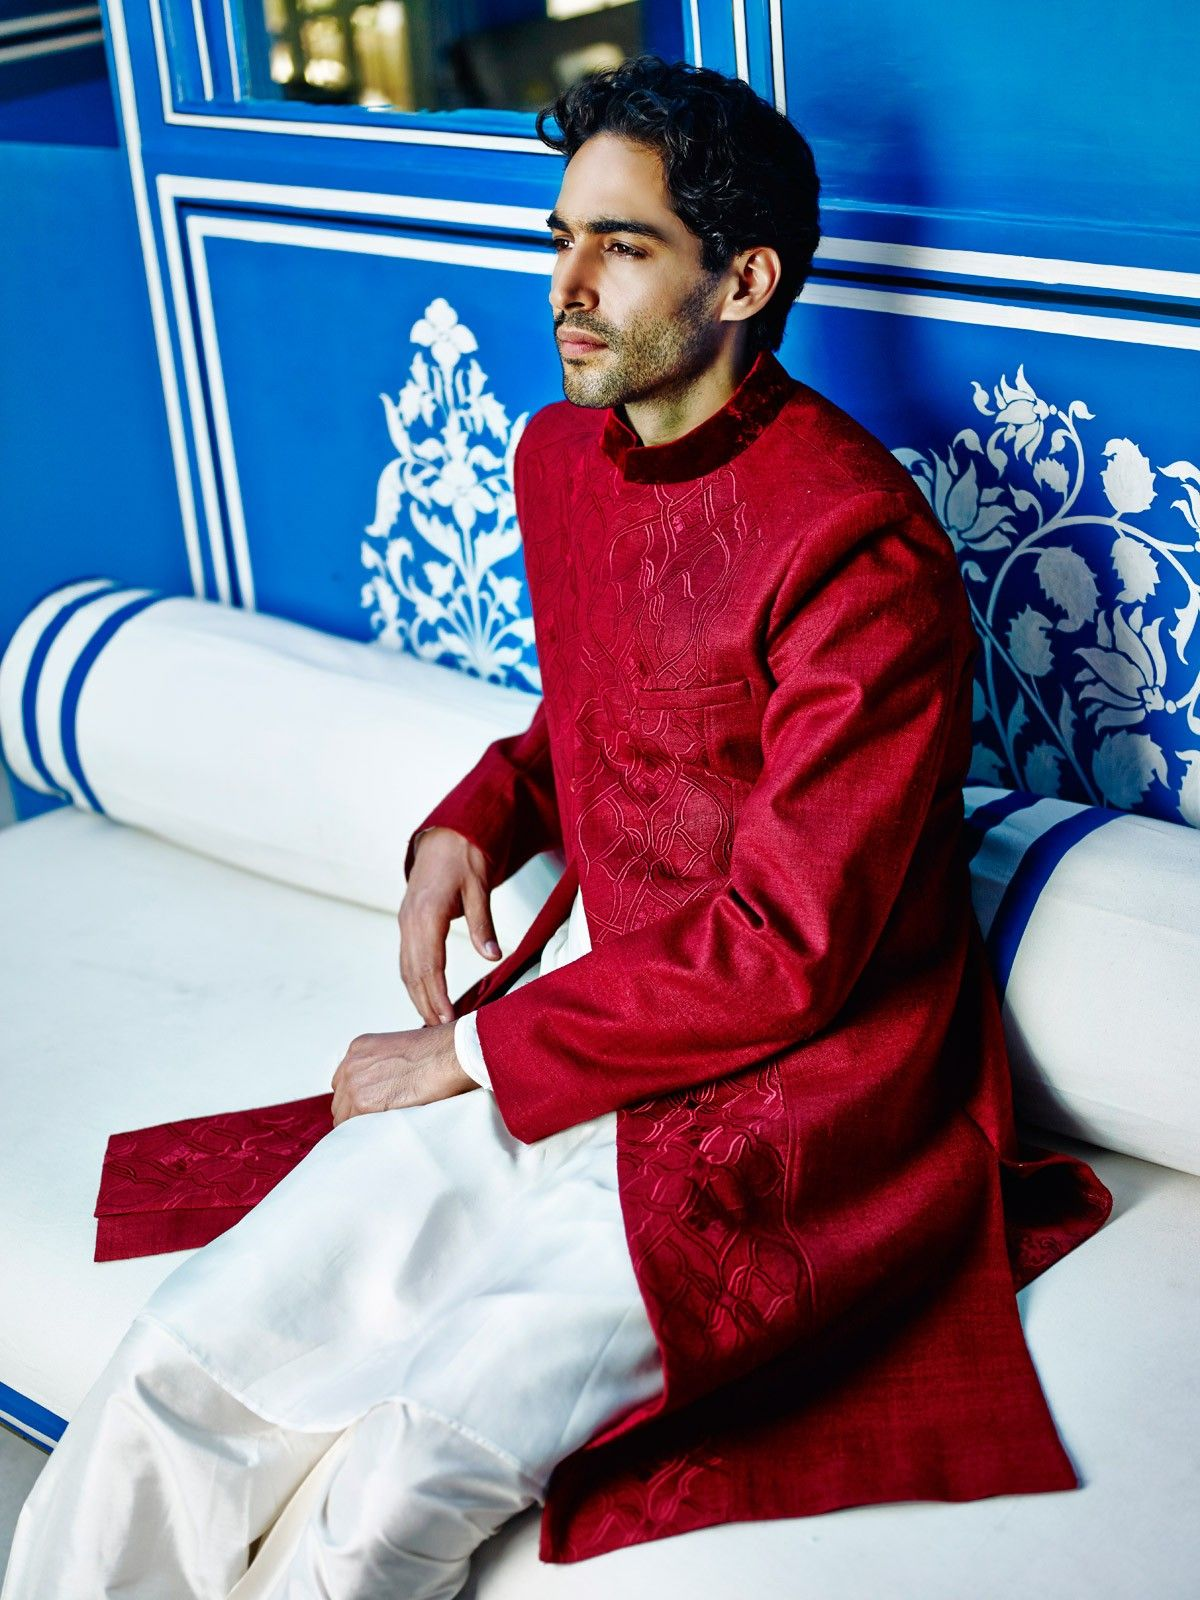 A traditional red sherwani is accentuated with subtle embroidery and velvet details to uplift the look. Team it with an off-white salwar and it's a great look for the wedding festivities.